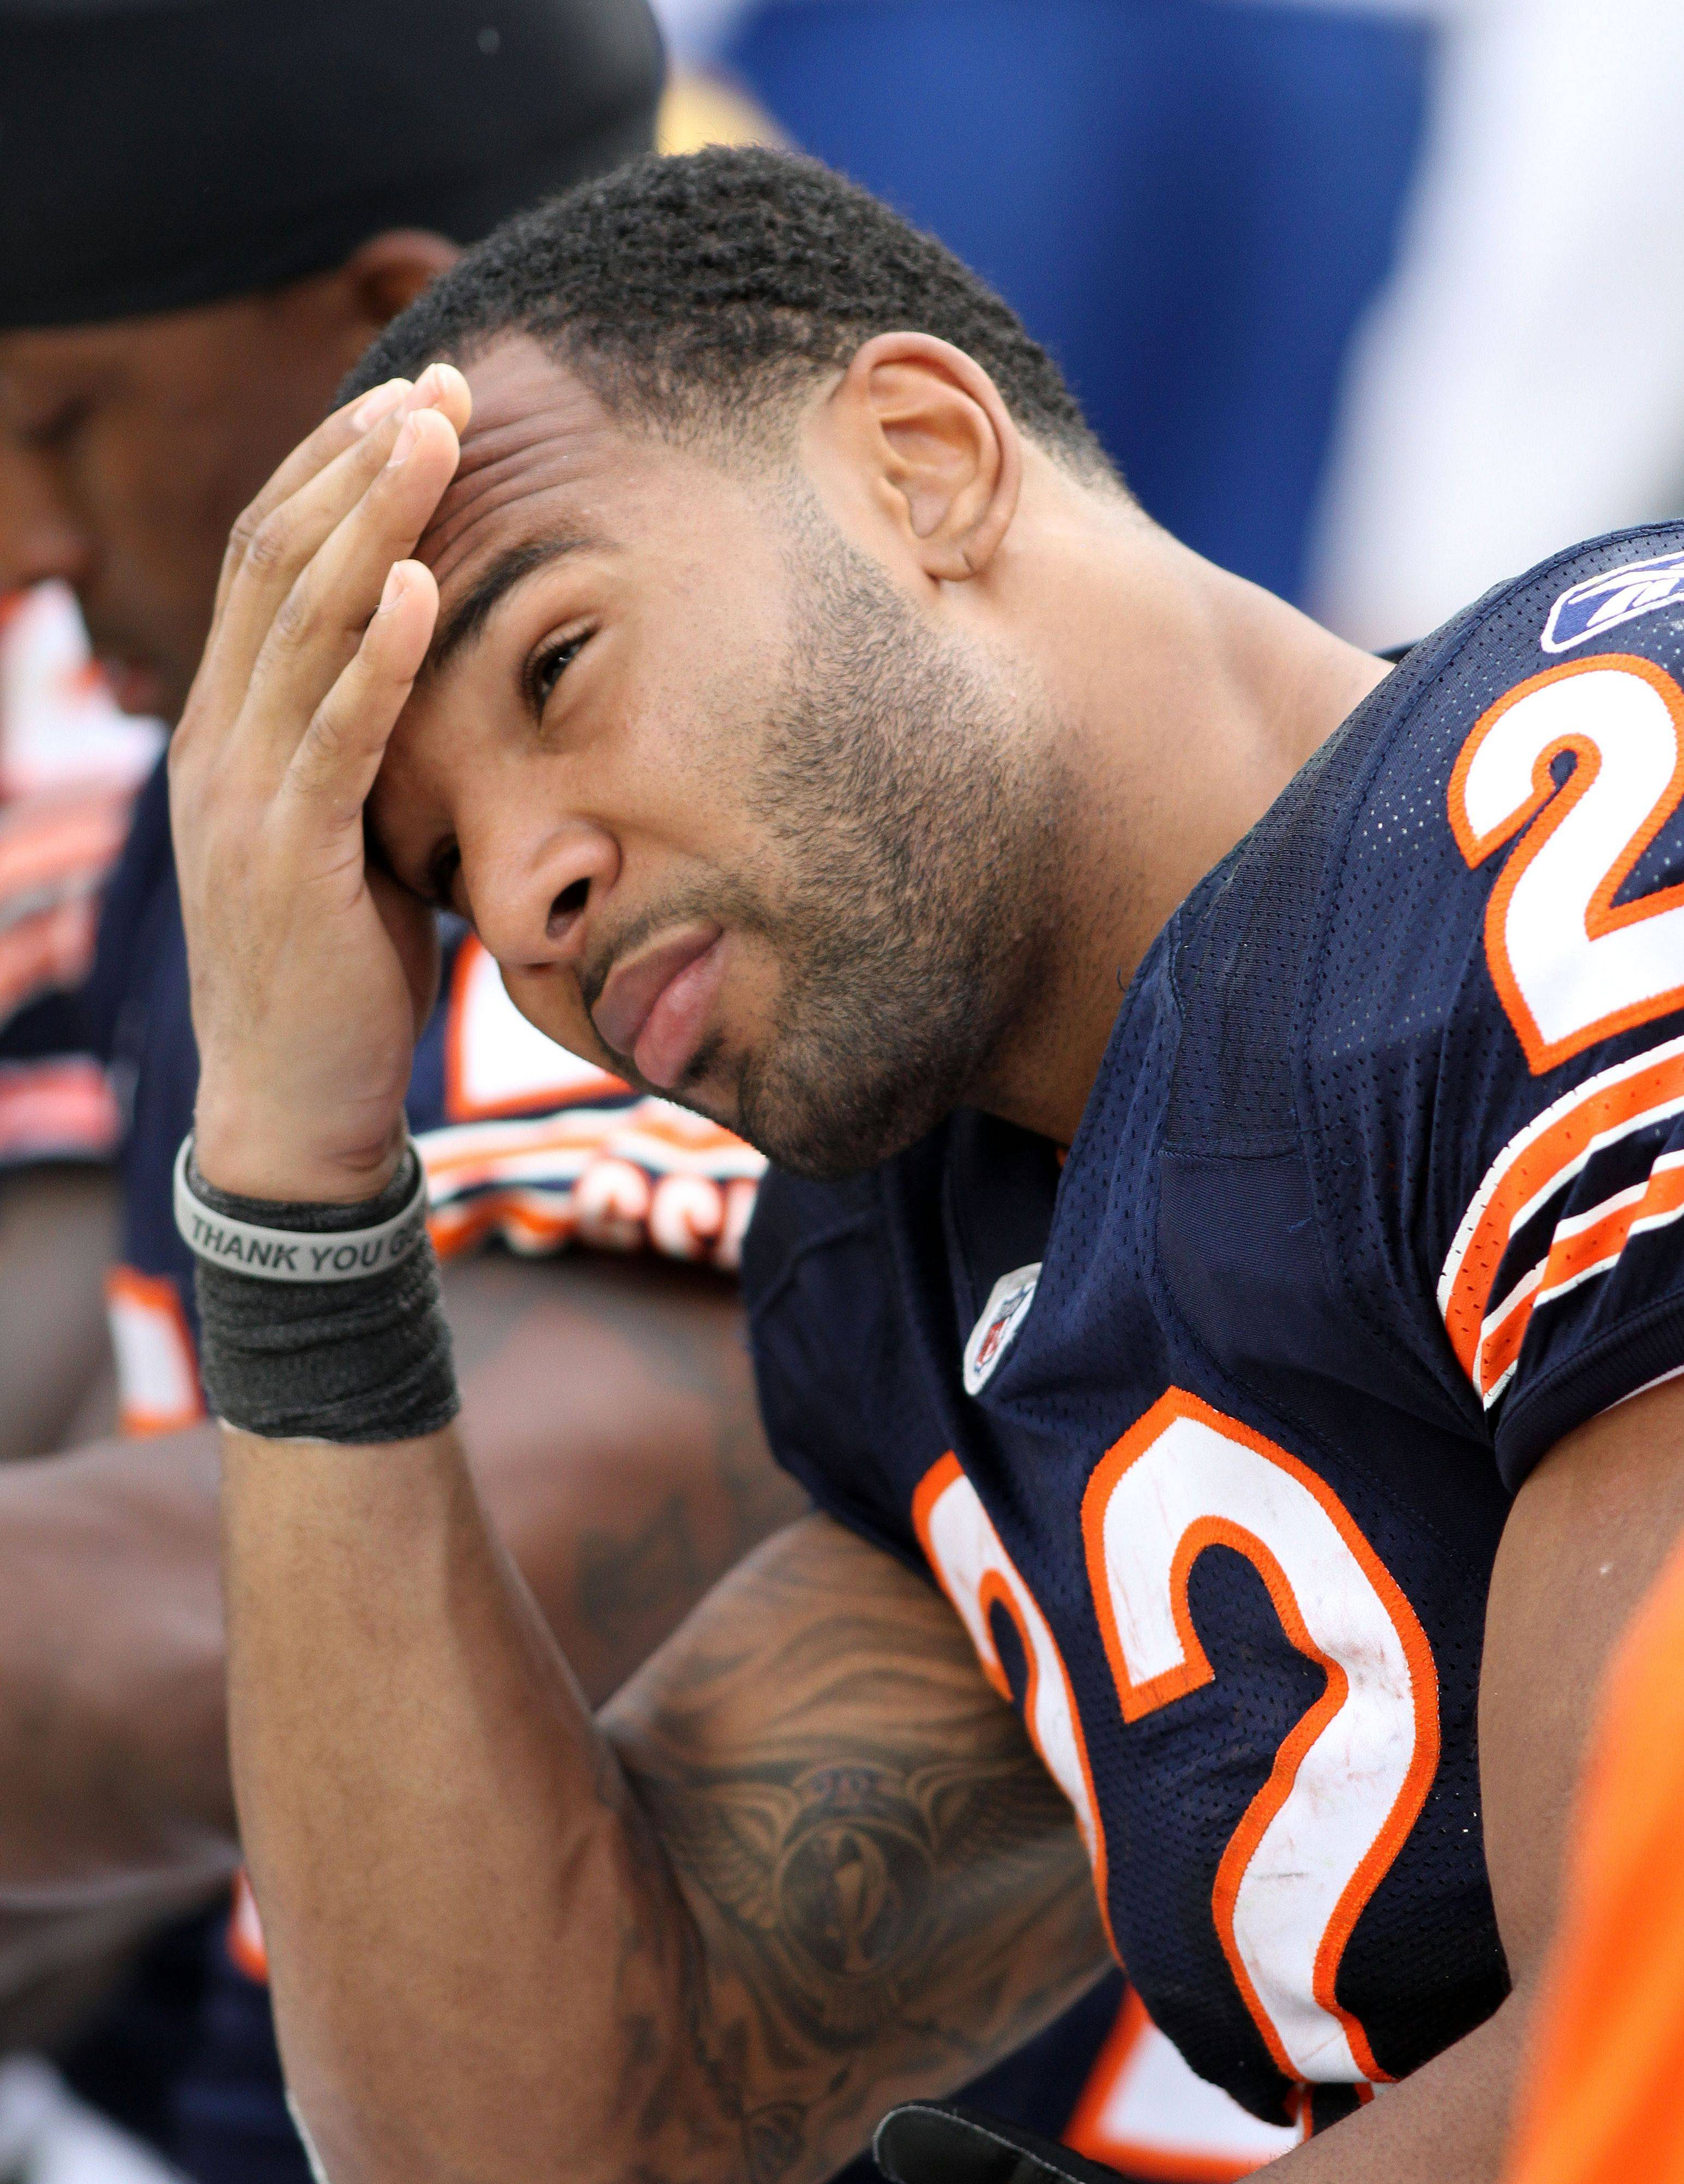 While it might not seem fair to Matt Forte, the best move for the Bears would be to wait before rewarding their running back with any long-term deal.